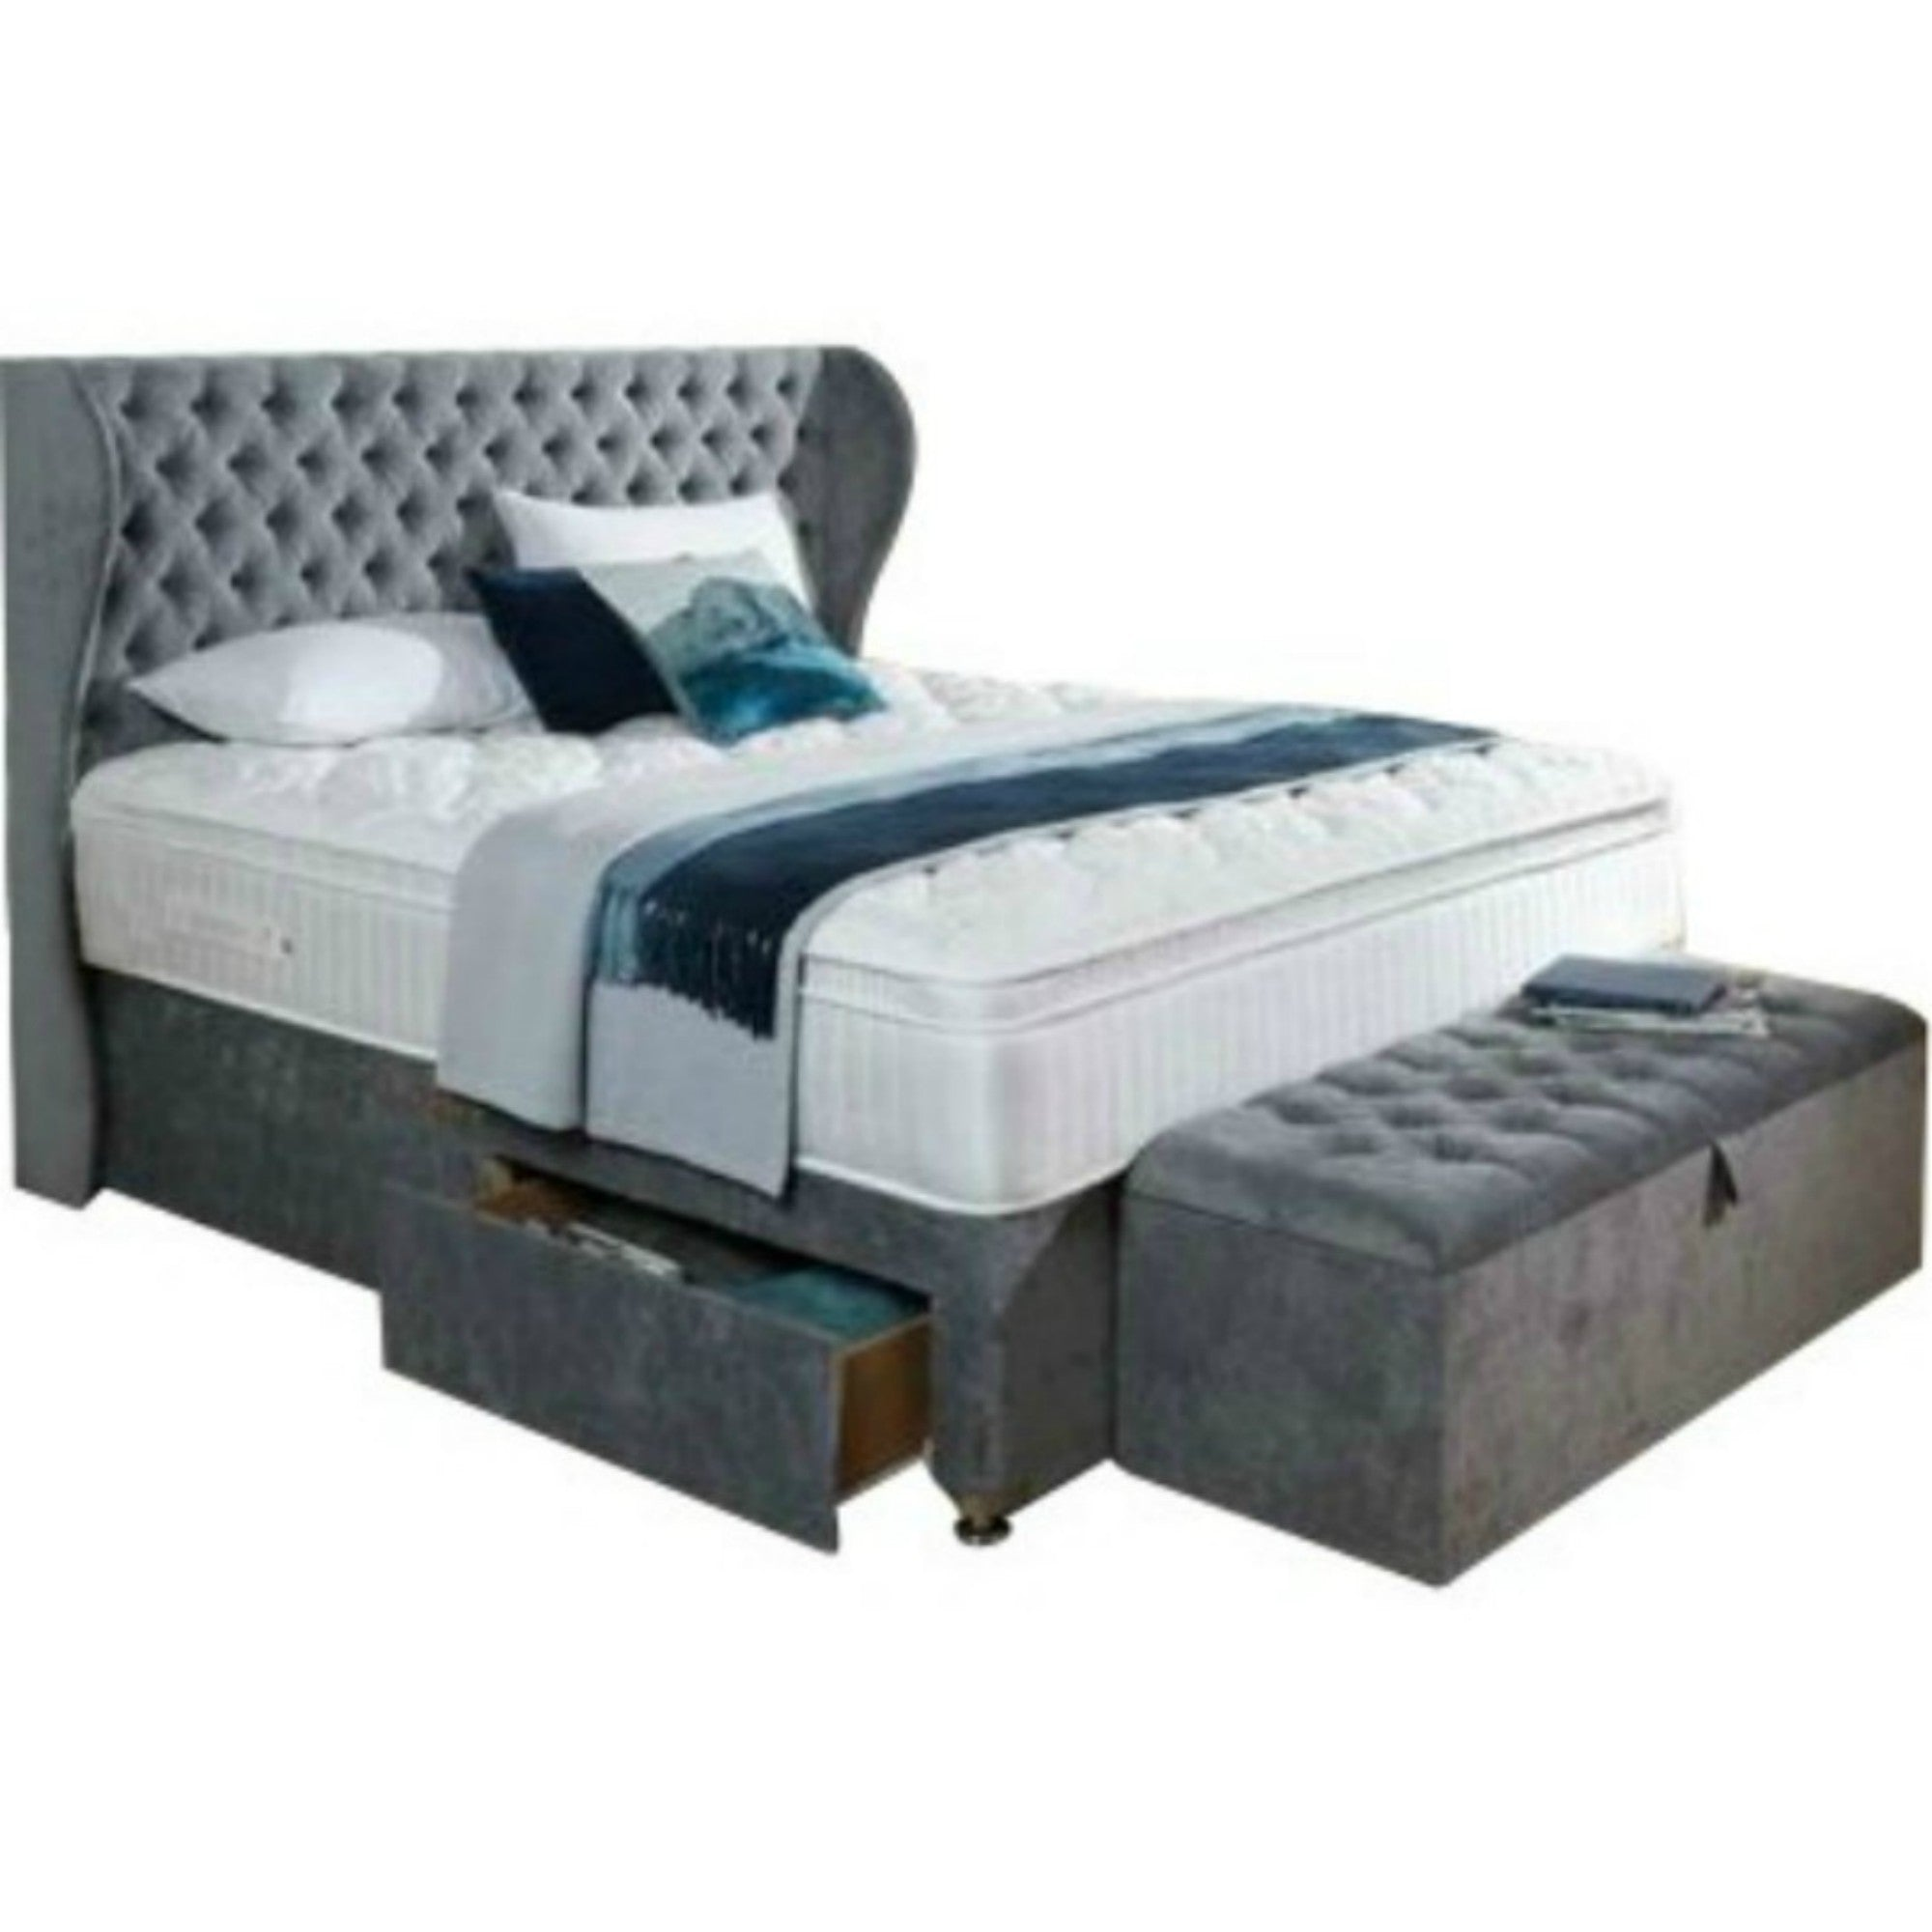 7c949a807b5d Solitaire Chesterfield Wing Bespoke Divan Storage Bed-Bed-Chic Concept